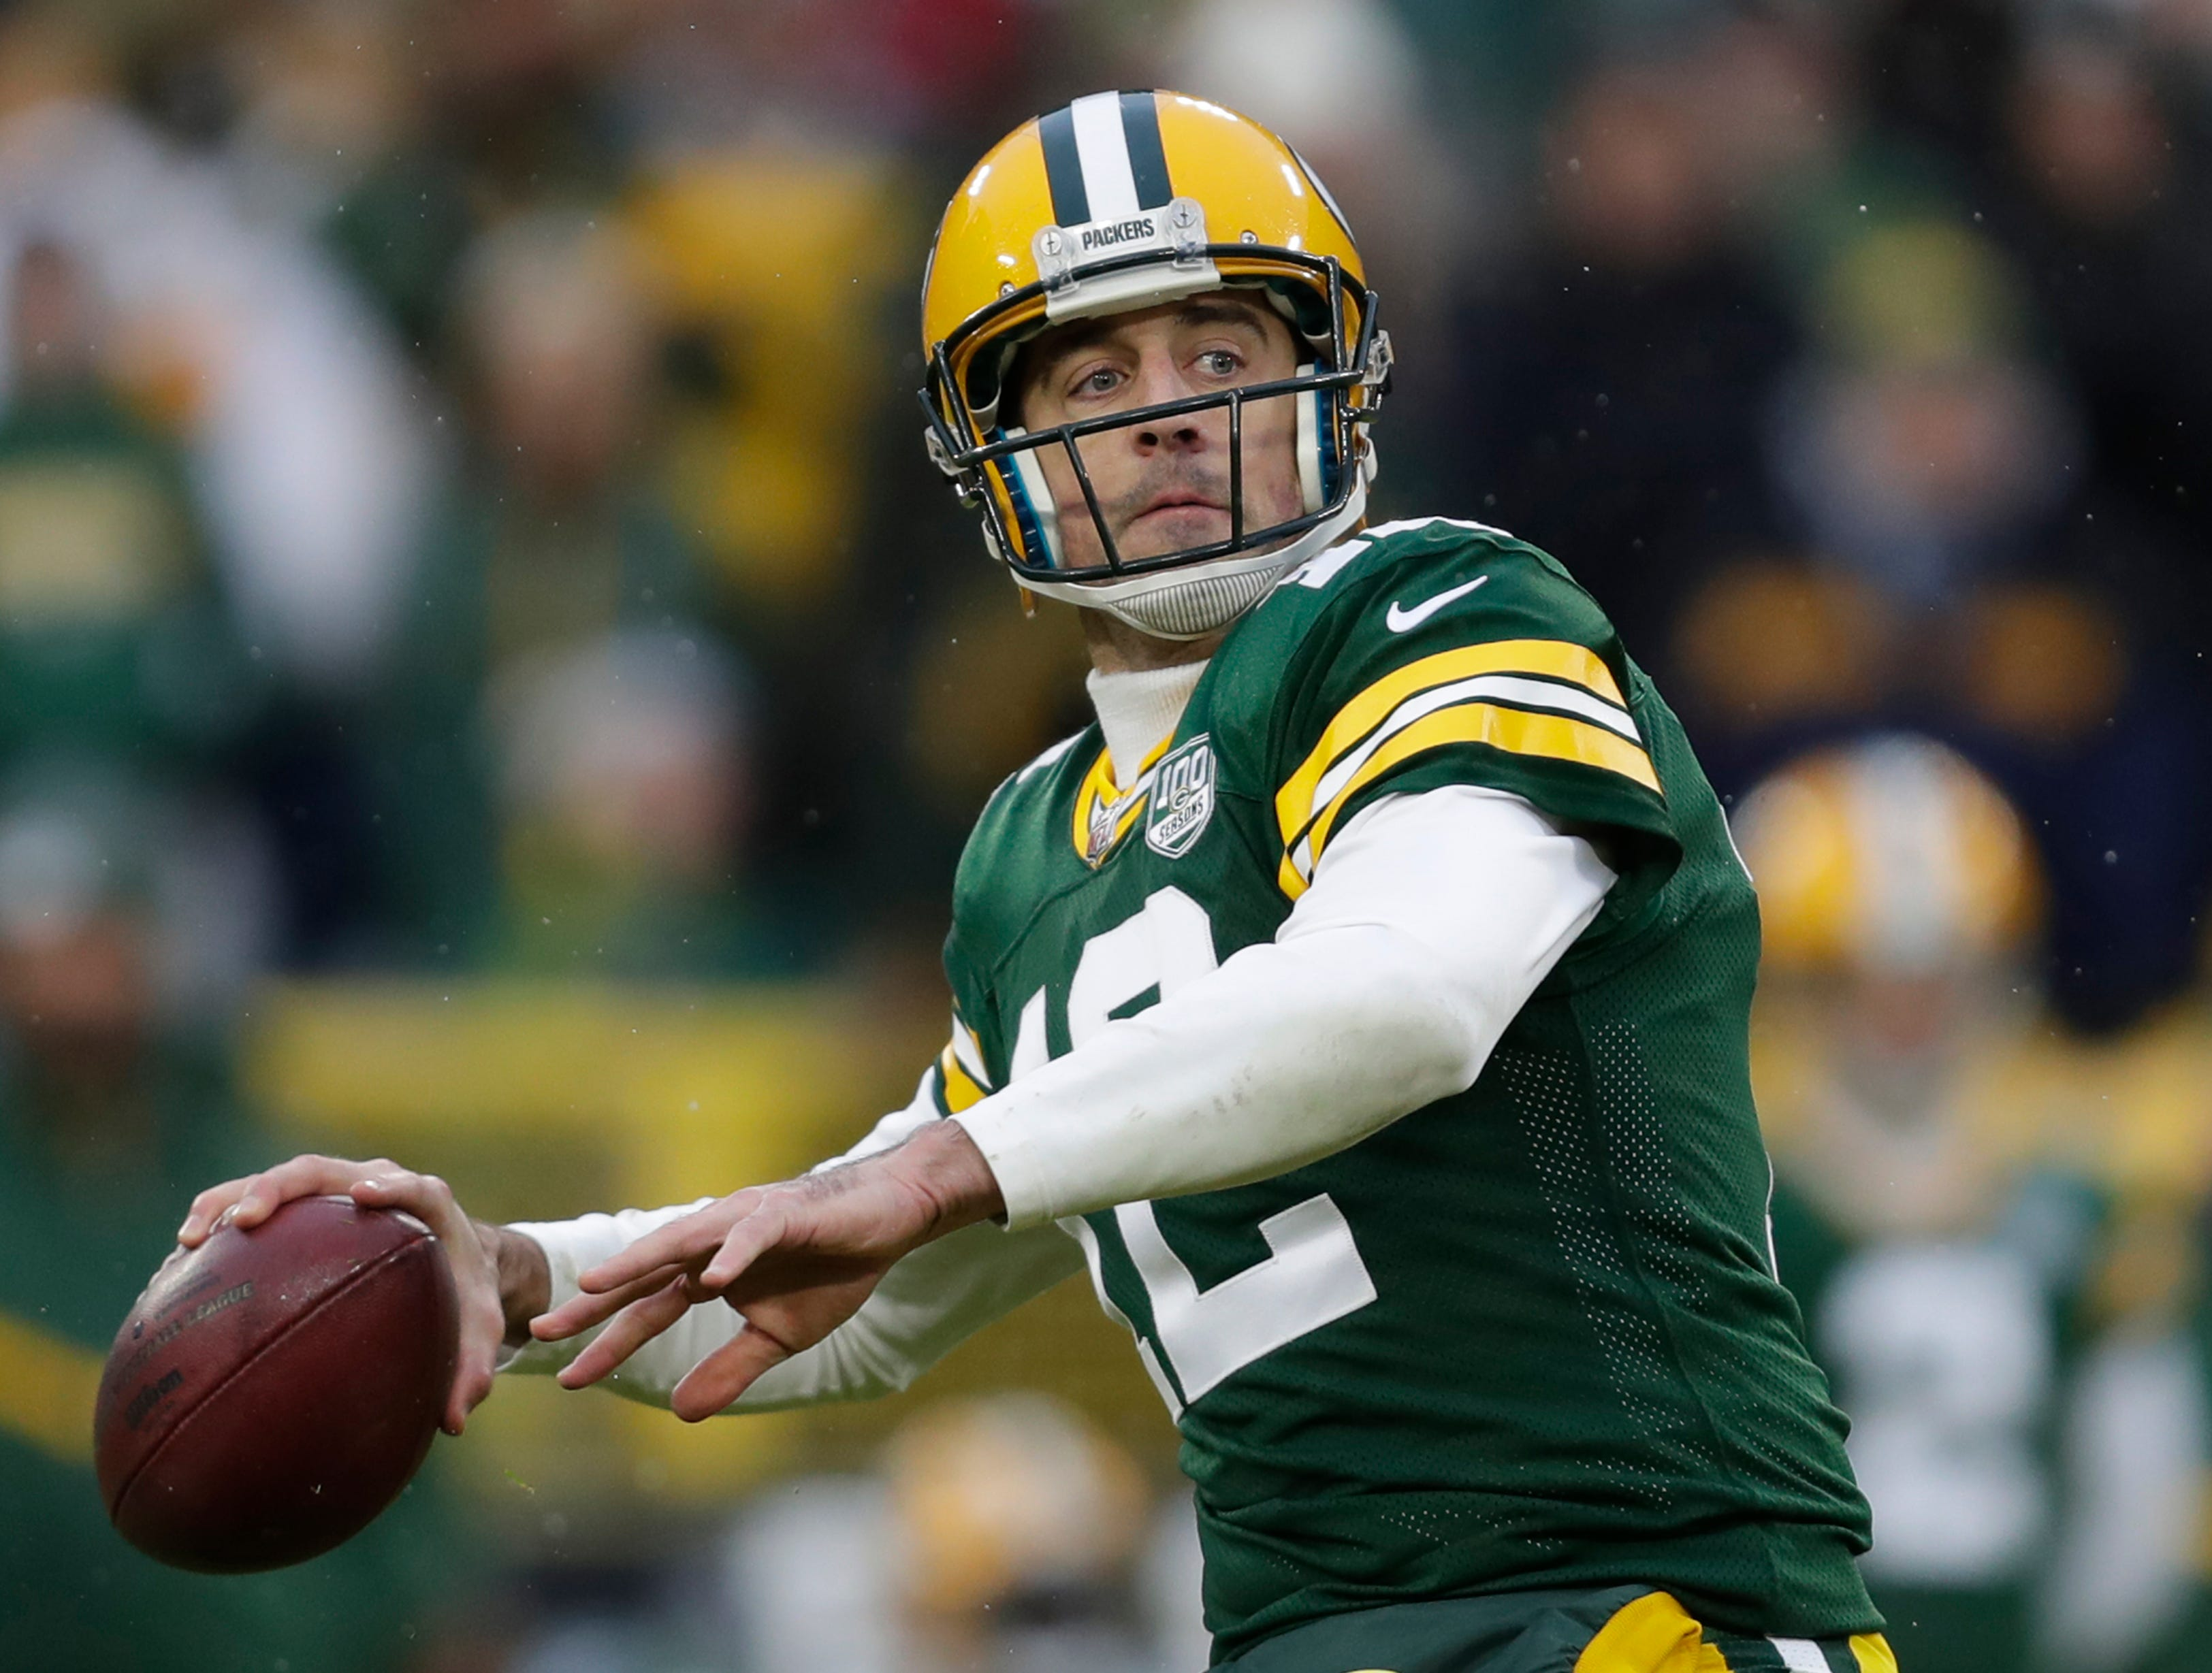 Green Bay Packers quarterback Aaron Rodgers (12) throws an incomplete long pass attempt late in the fourth quarter against the Arizona Cardinals Sunday, December 2, 2018, at Lambeau Field in Green Bay, Wis. 